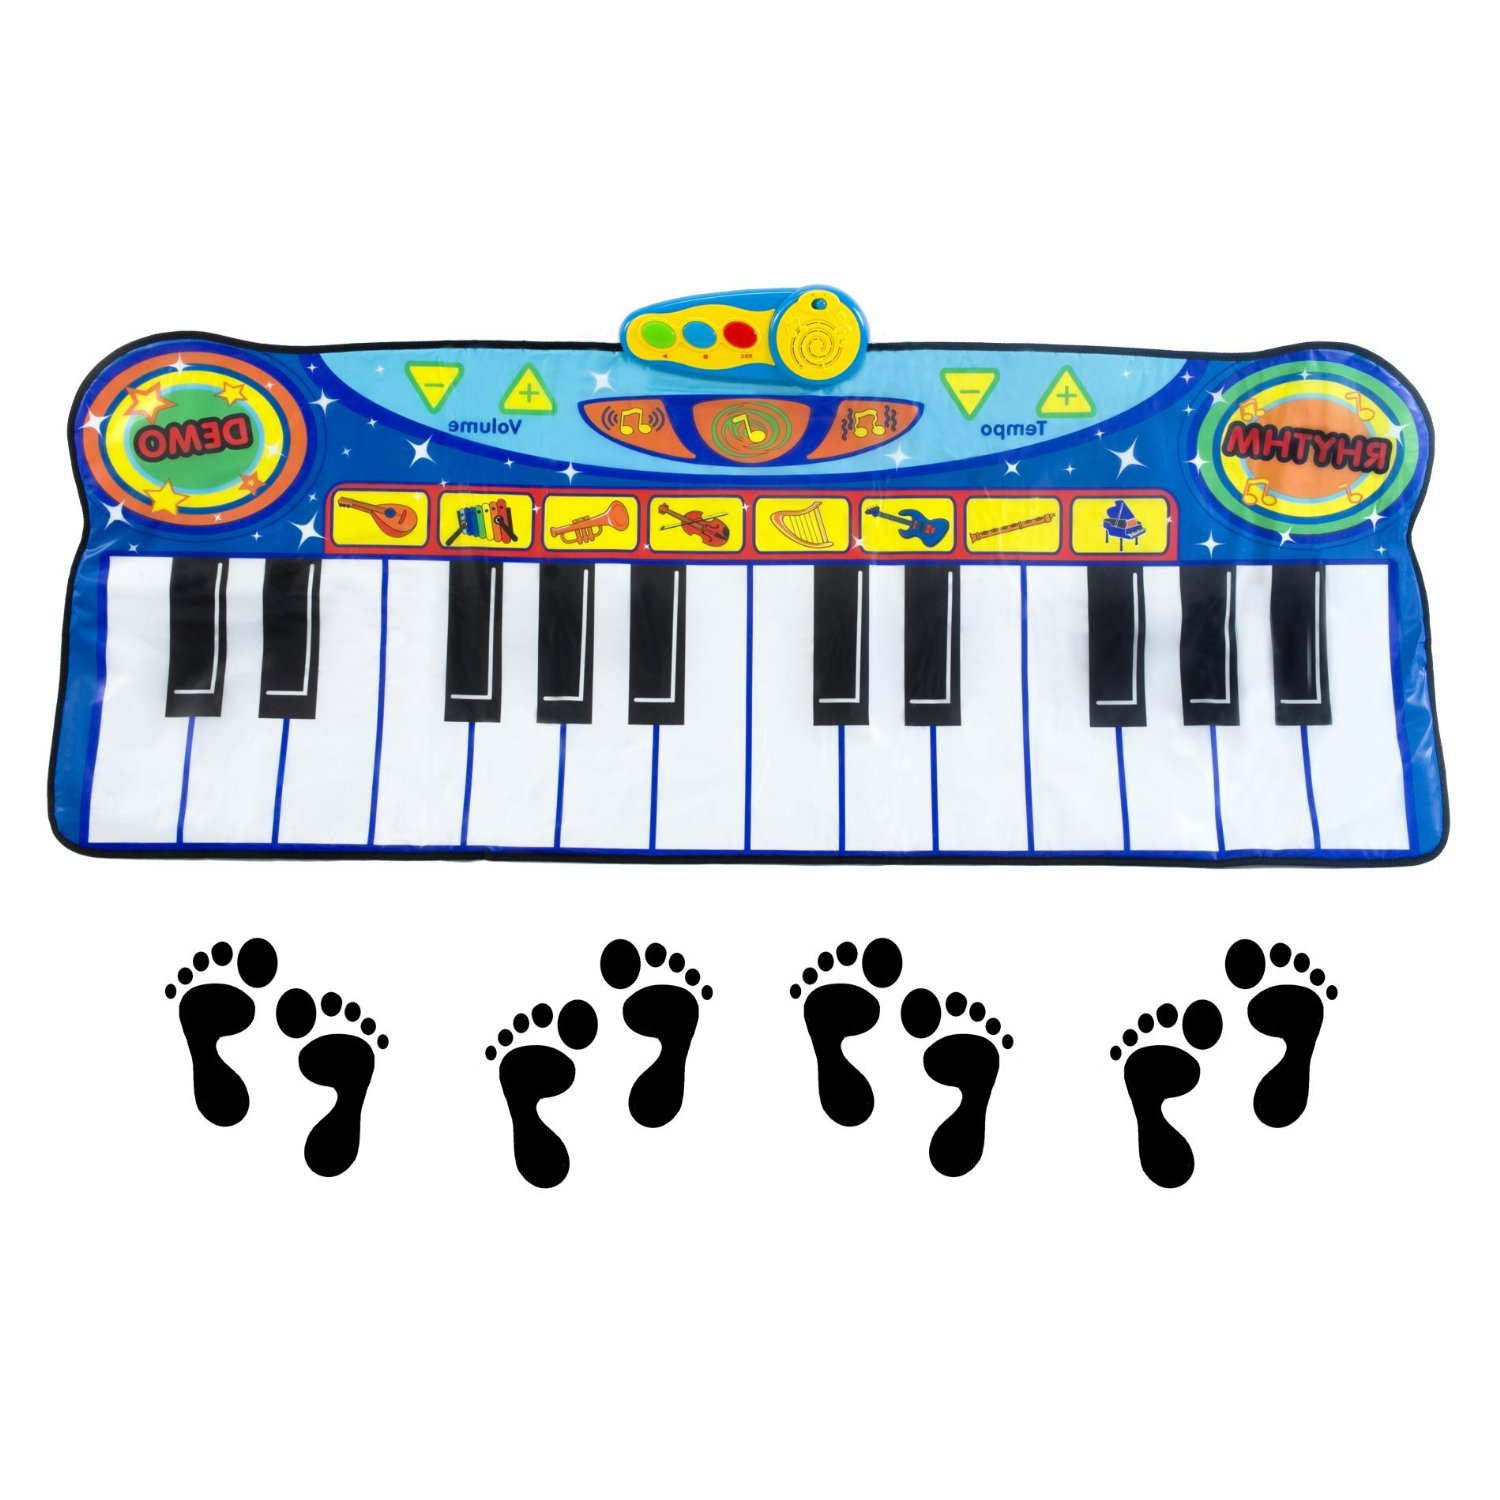 Amazon: Winfun Step To Play Giant Piano Mat 41% Off - The